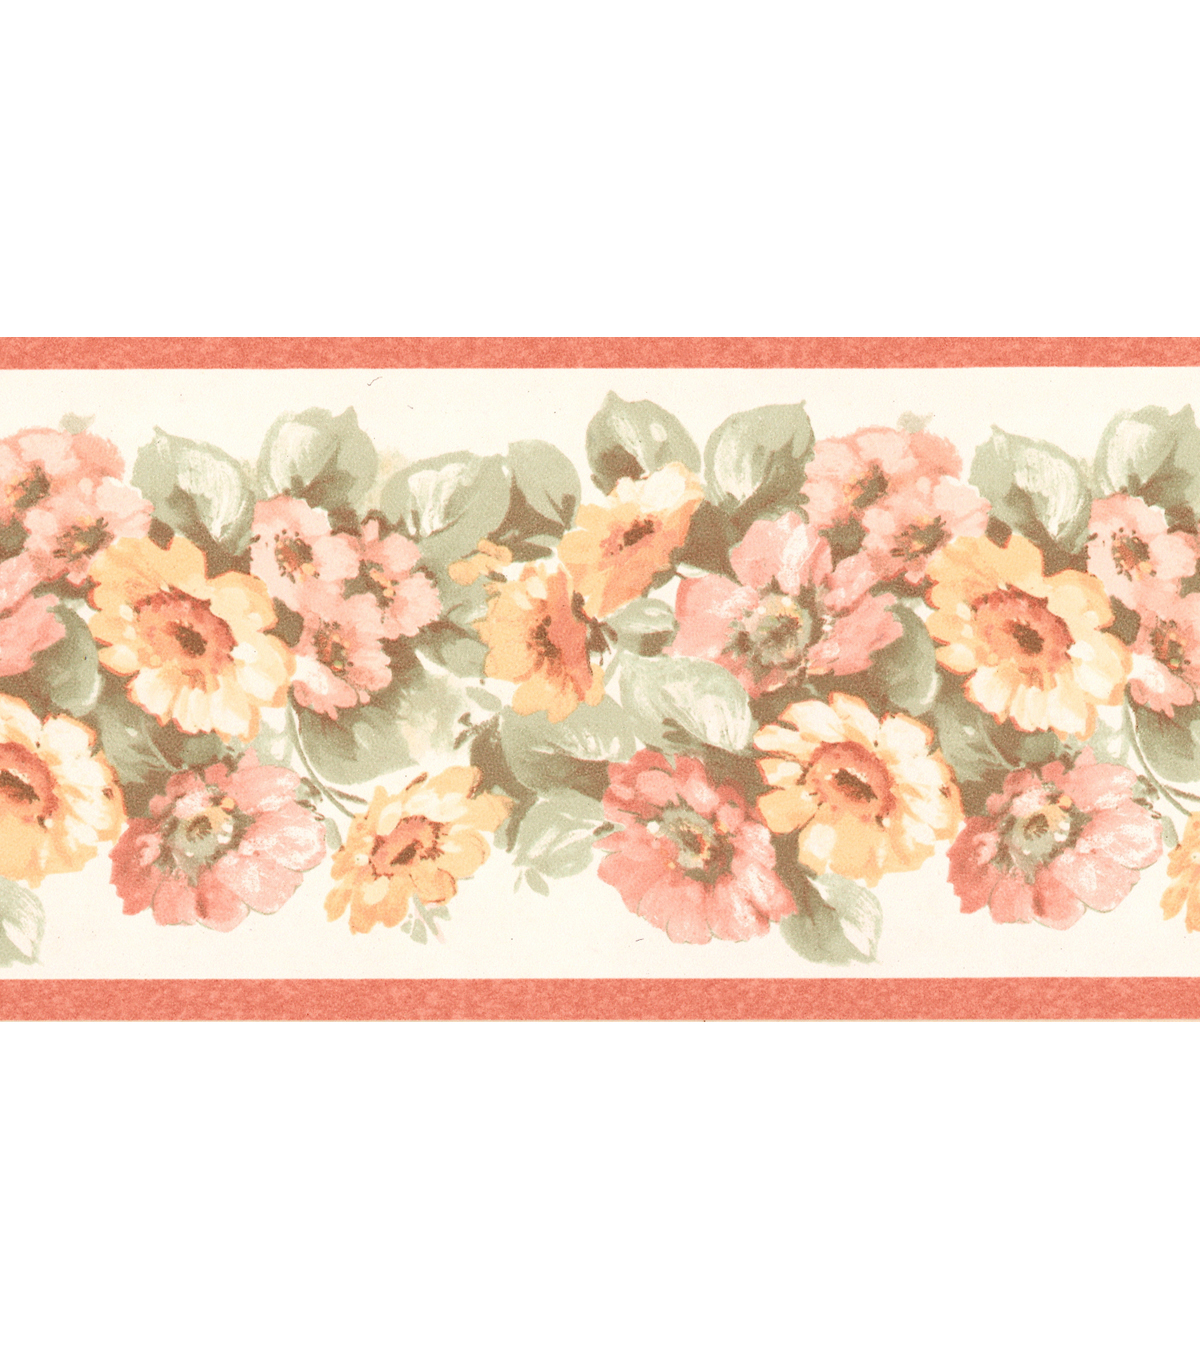 Maryanne Peach Floral Garden Wallpaper Border Sample